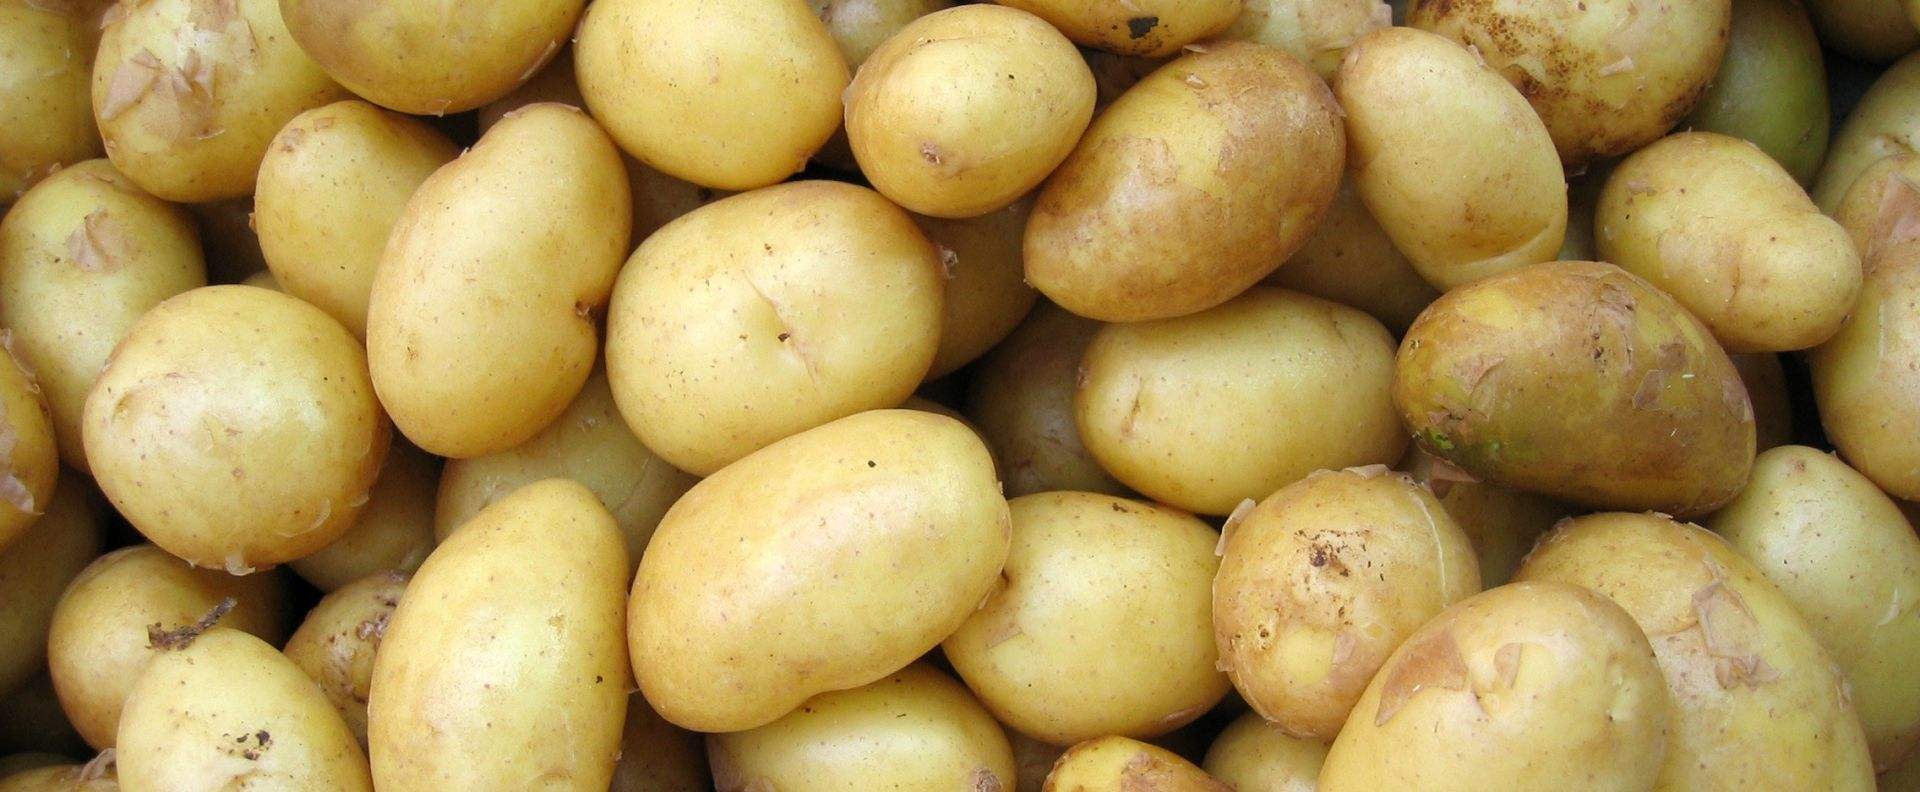 Smart Potato ontwikkeld door studenten HBO-ICT